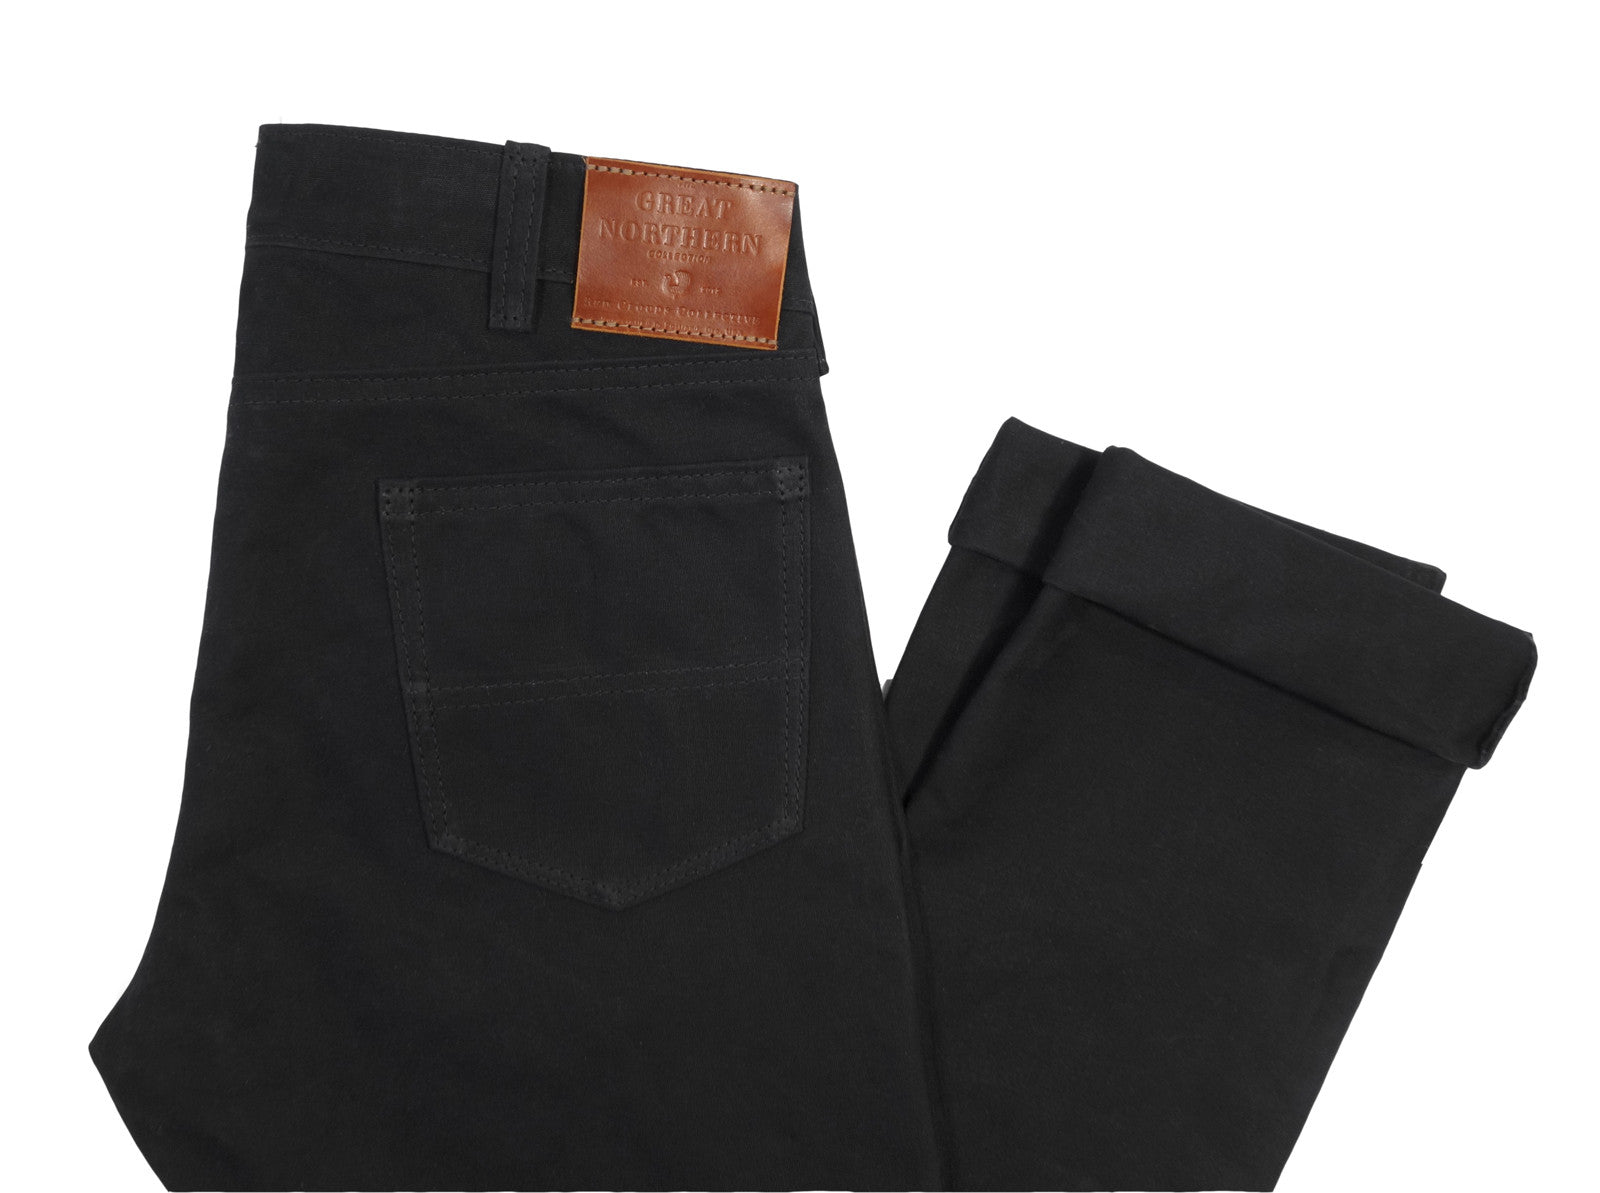 Waxed Canvas Pant, Fitted pant, waxed canvas pants, pants made in usa, made in Portland Oregon, durable pants, best waxed canvas pants, slim fit work pant, red clouds pants, waxed cotton pants, pants made to last, GN.04 canvas pants